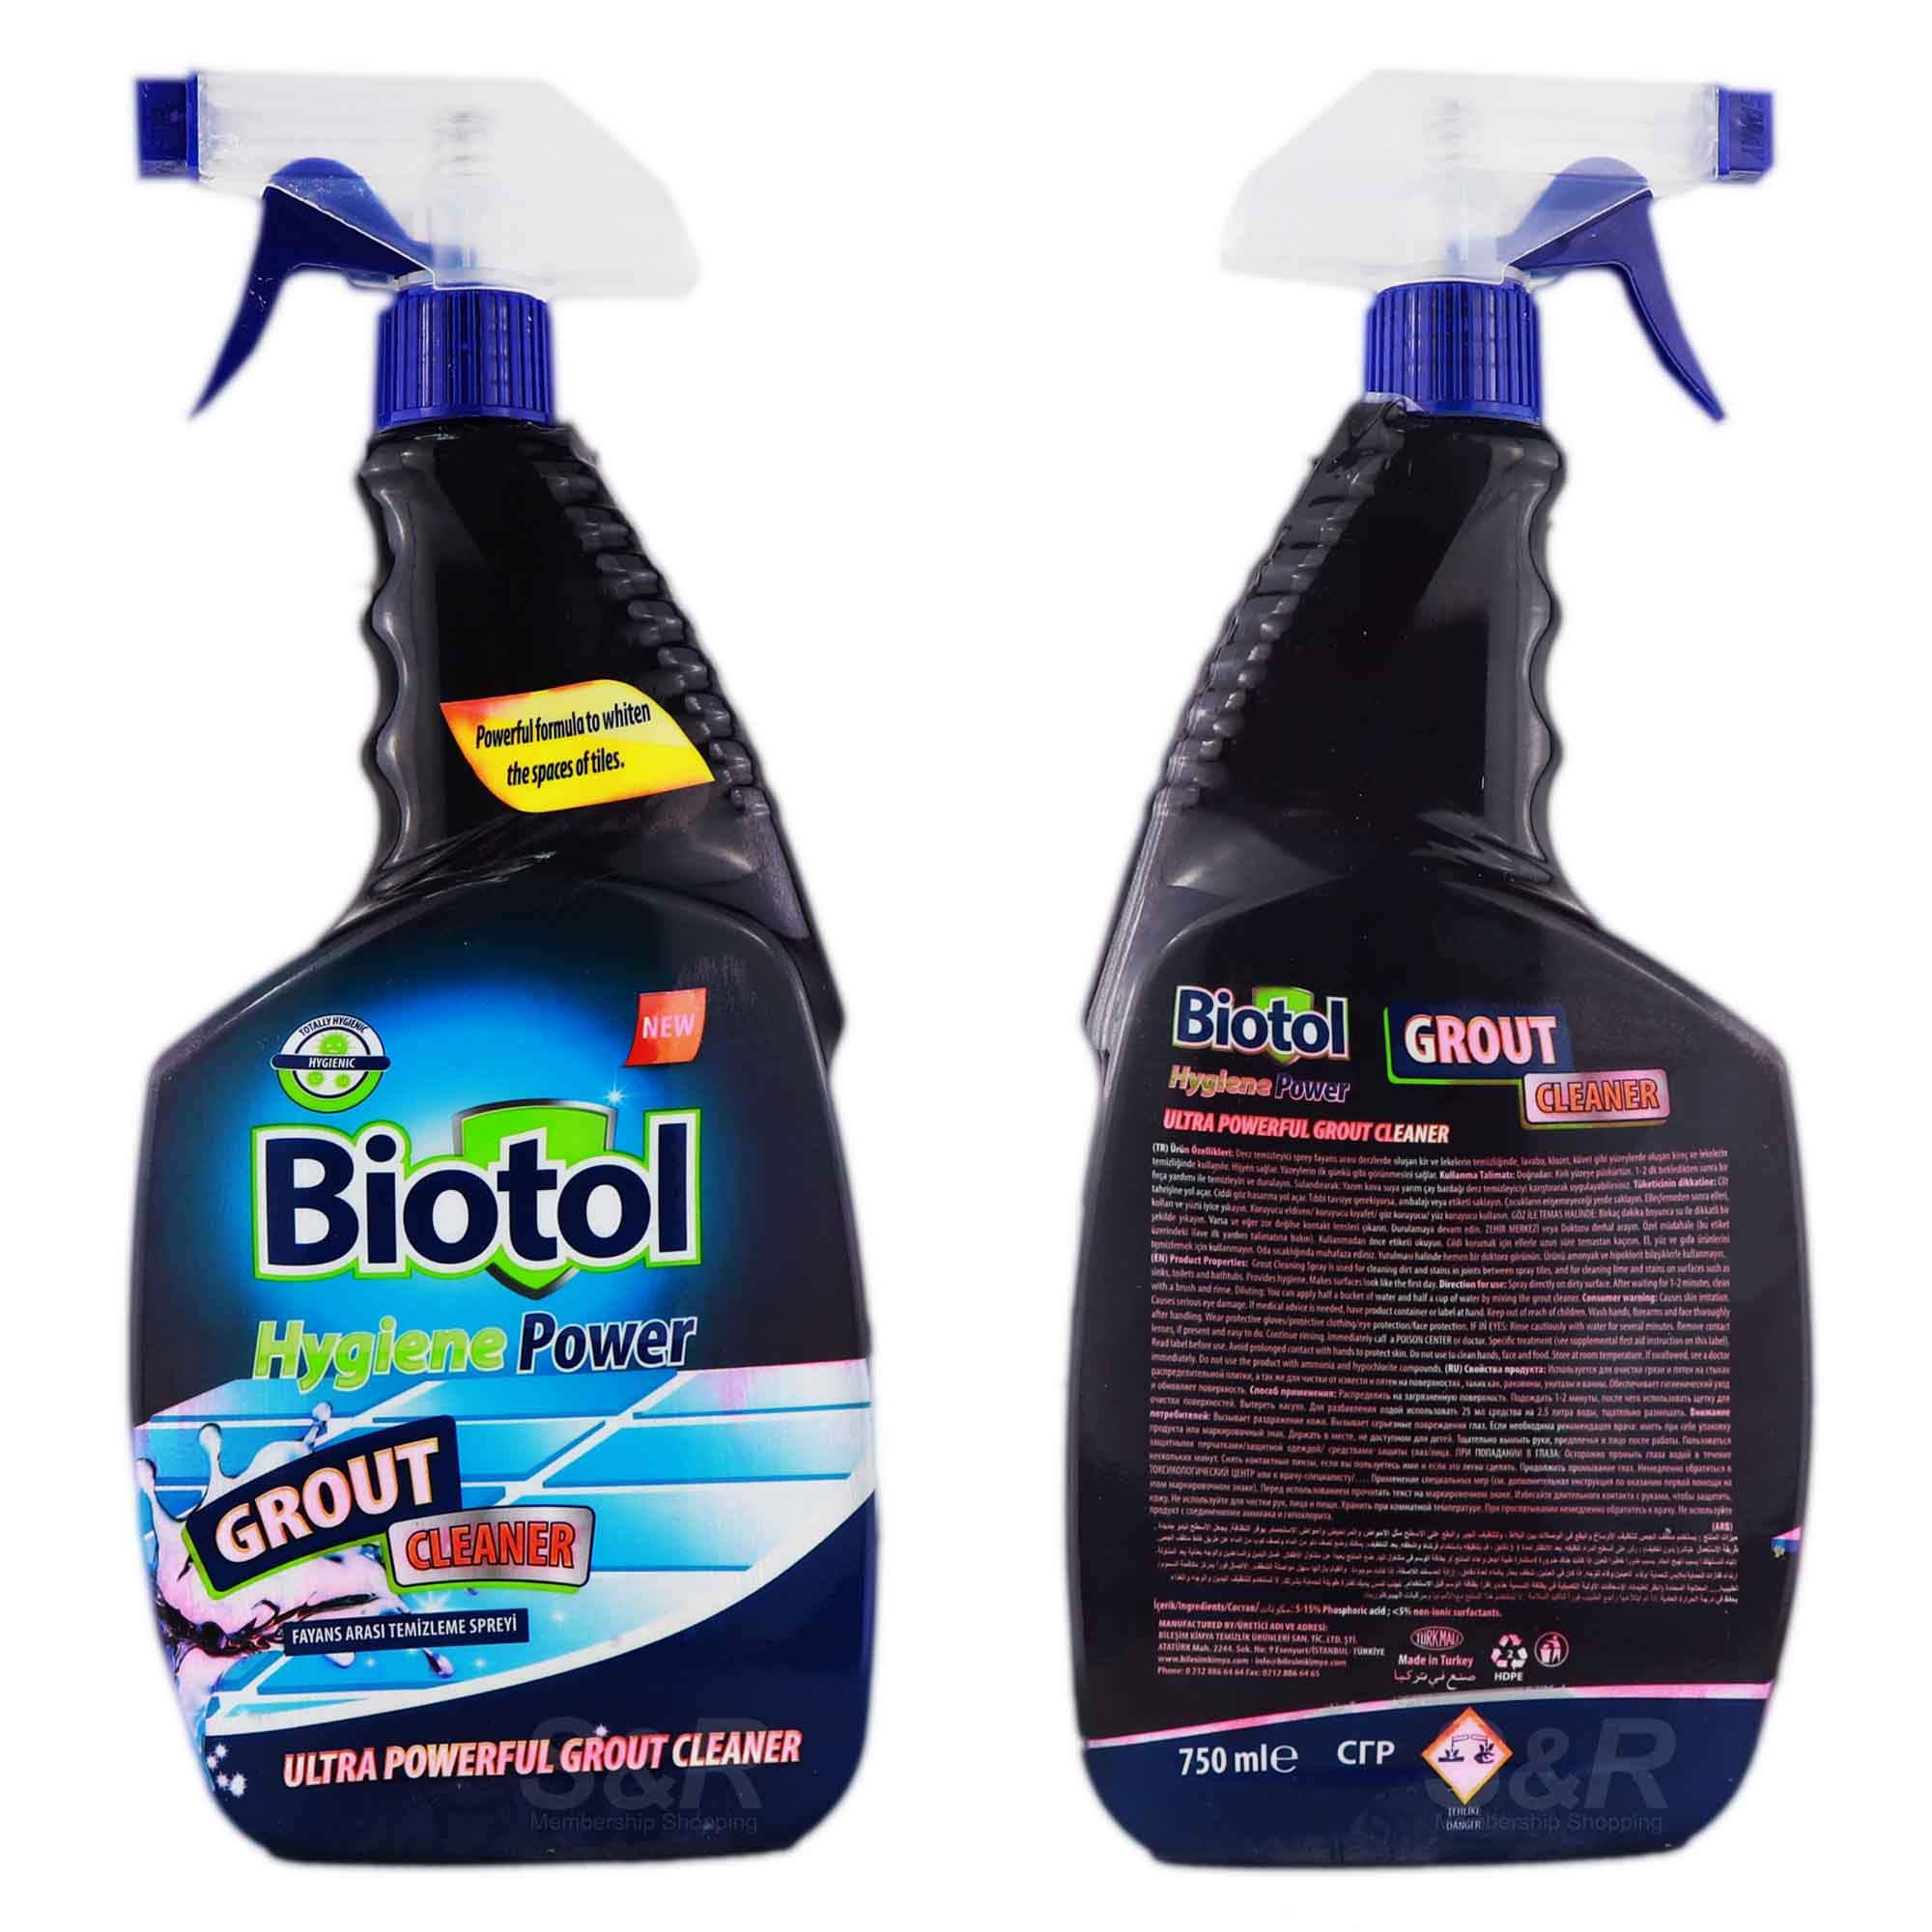 Biotol Grout Cleaner Reviews – Let's Find Its Legitimacy!